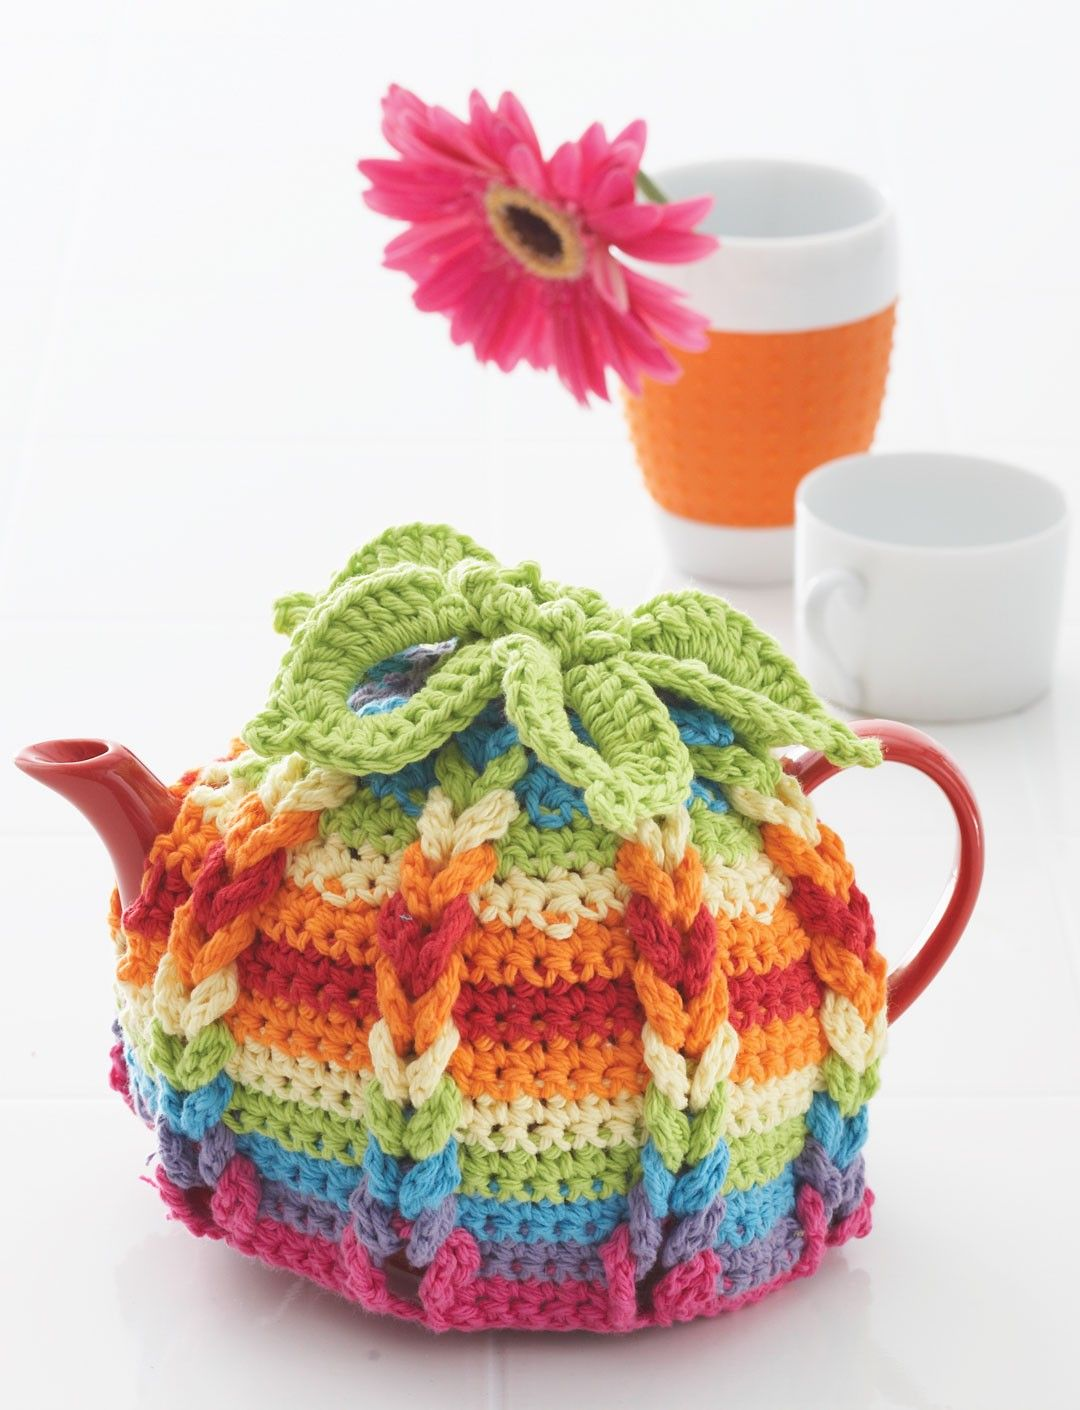 Yarnspirations.com - Lily Hot Hibiscus Tea Cozy | Yarnspirations ...